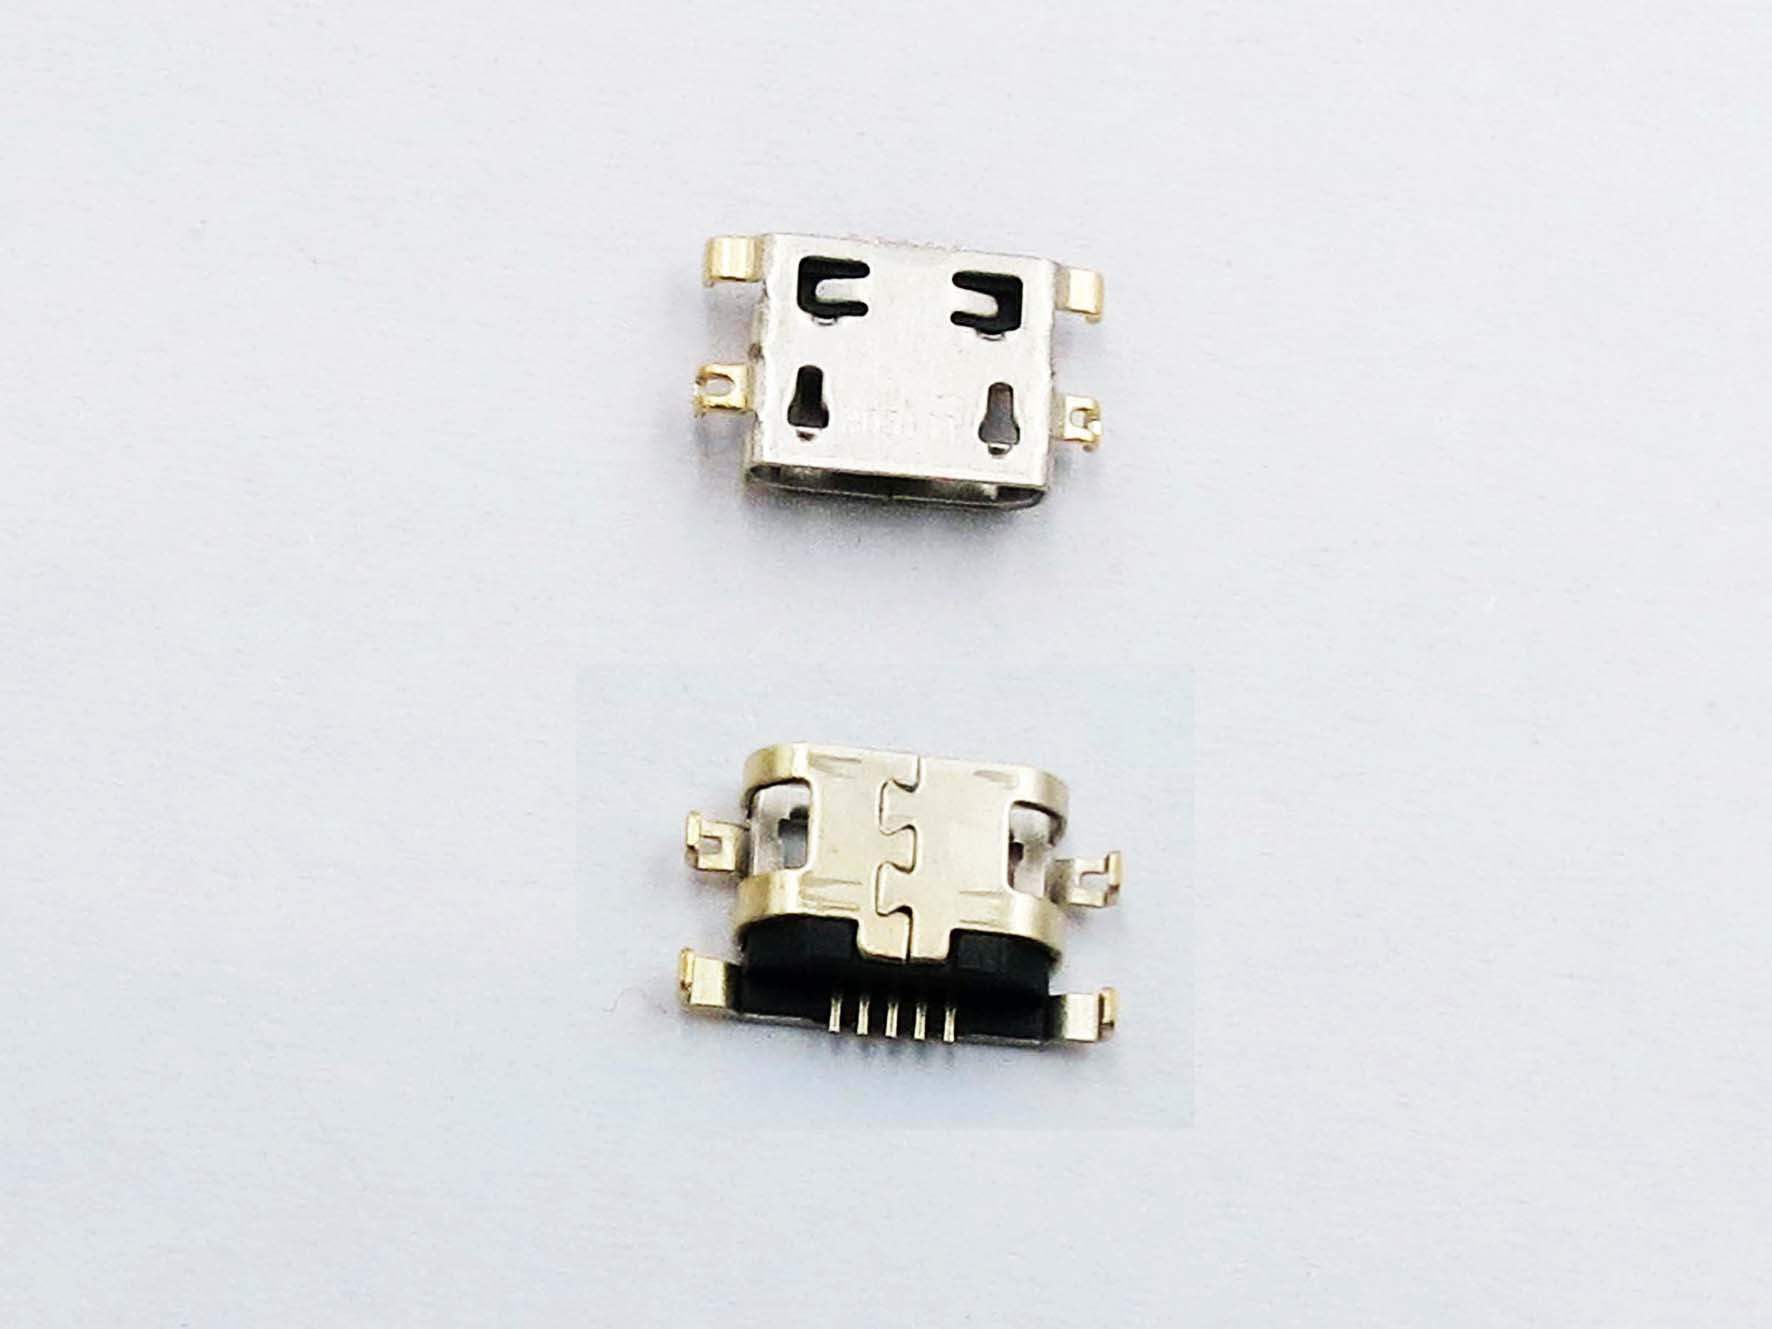 USB charger charging connector plug dock for Redmi note 4x